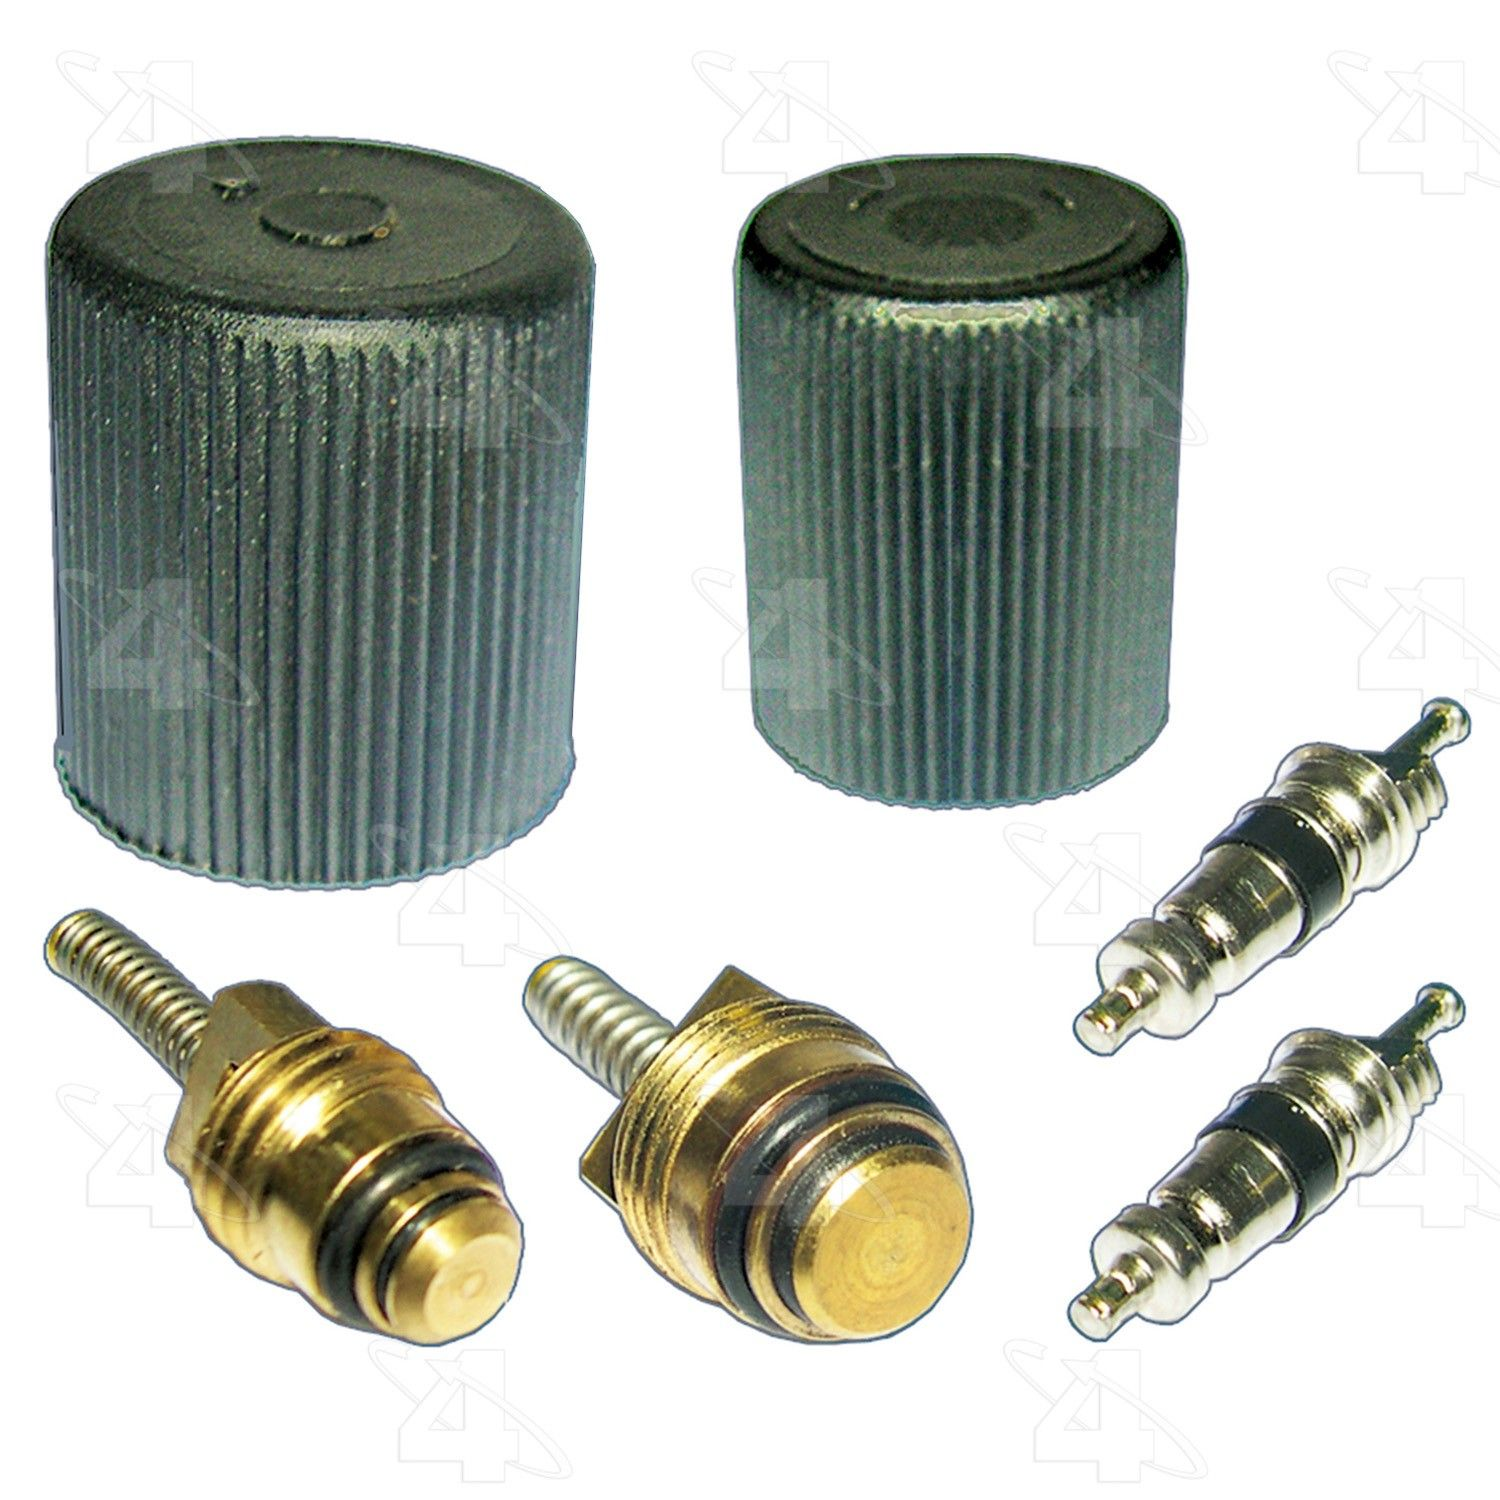 A//C System Valve Core and Cap Kit-AC System Seal Kit 4 Seasons 26783